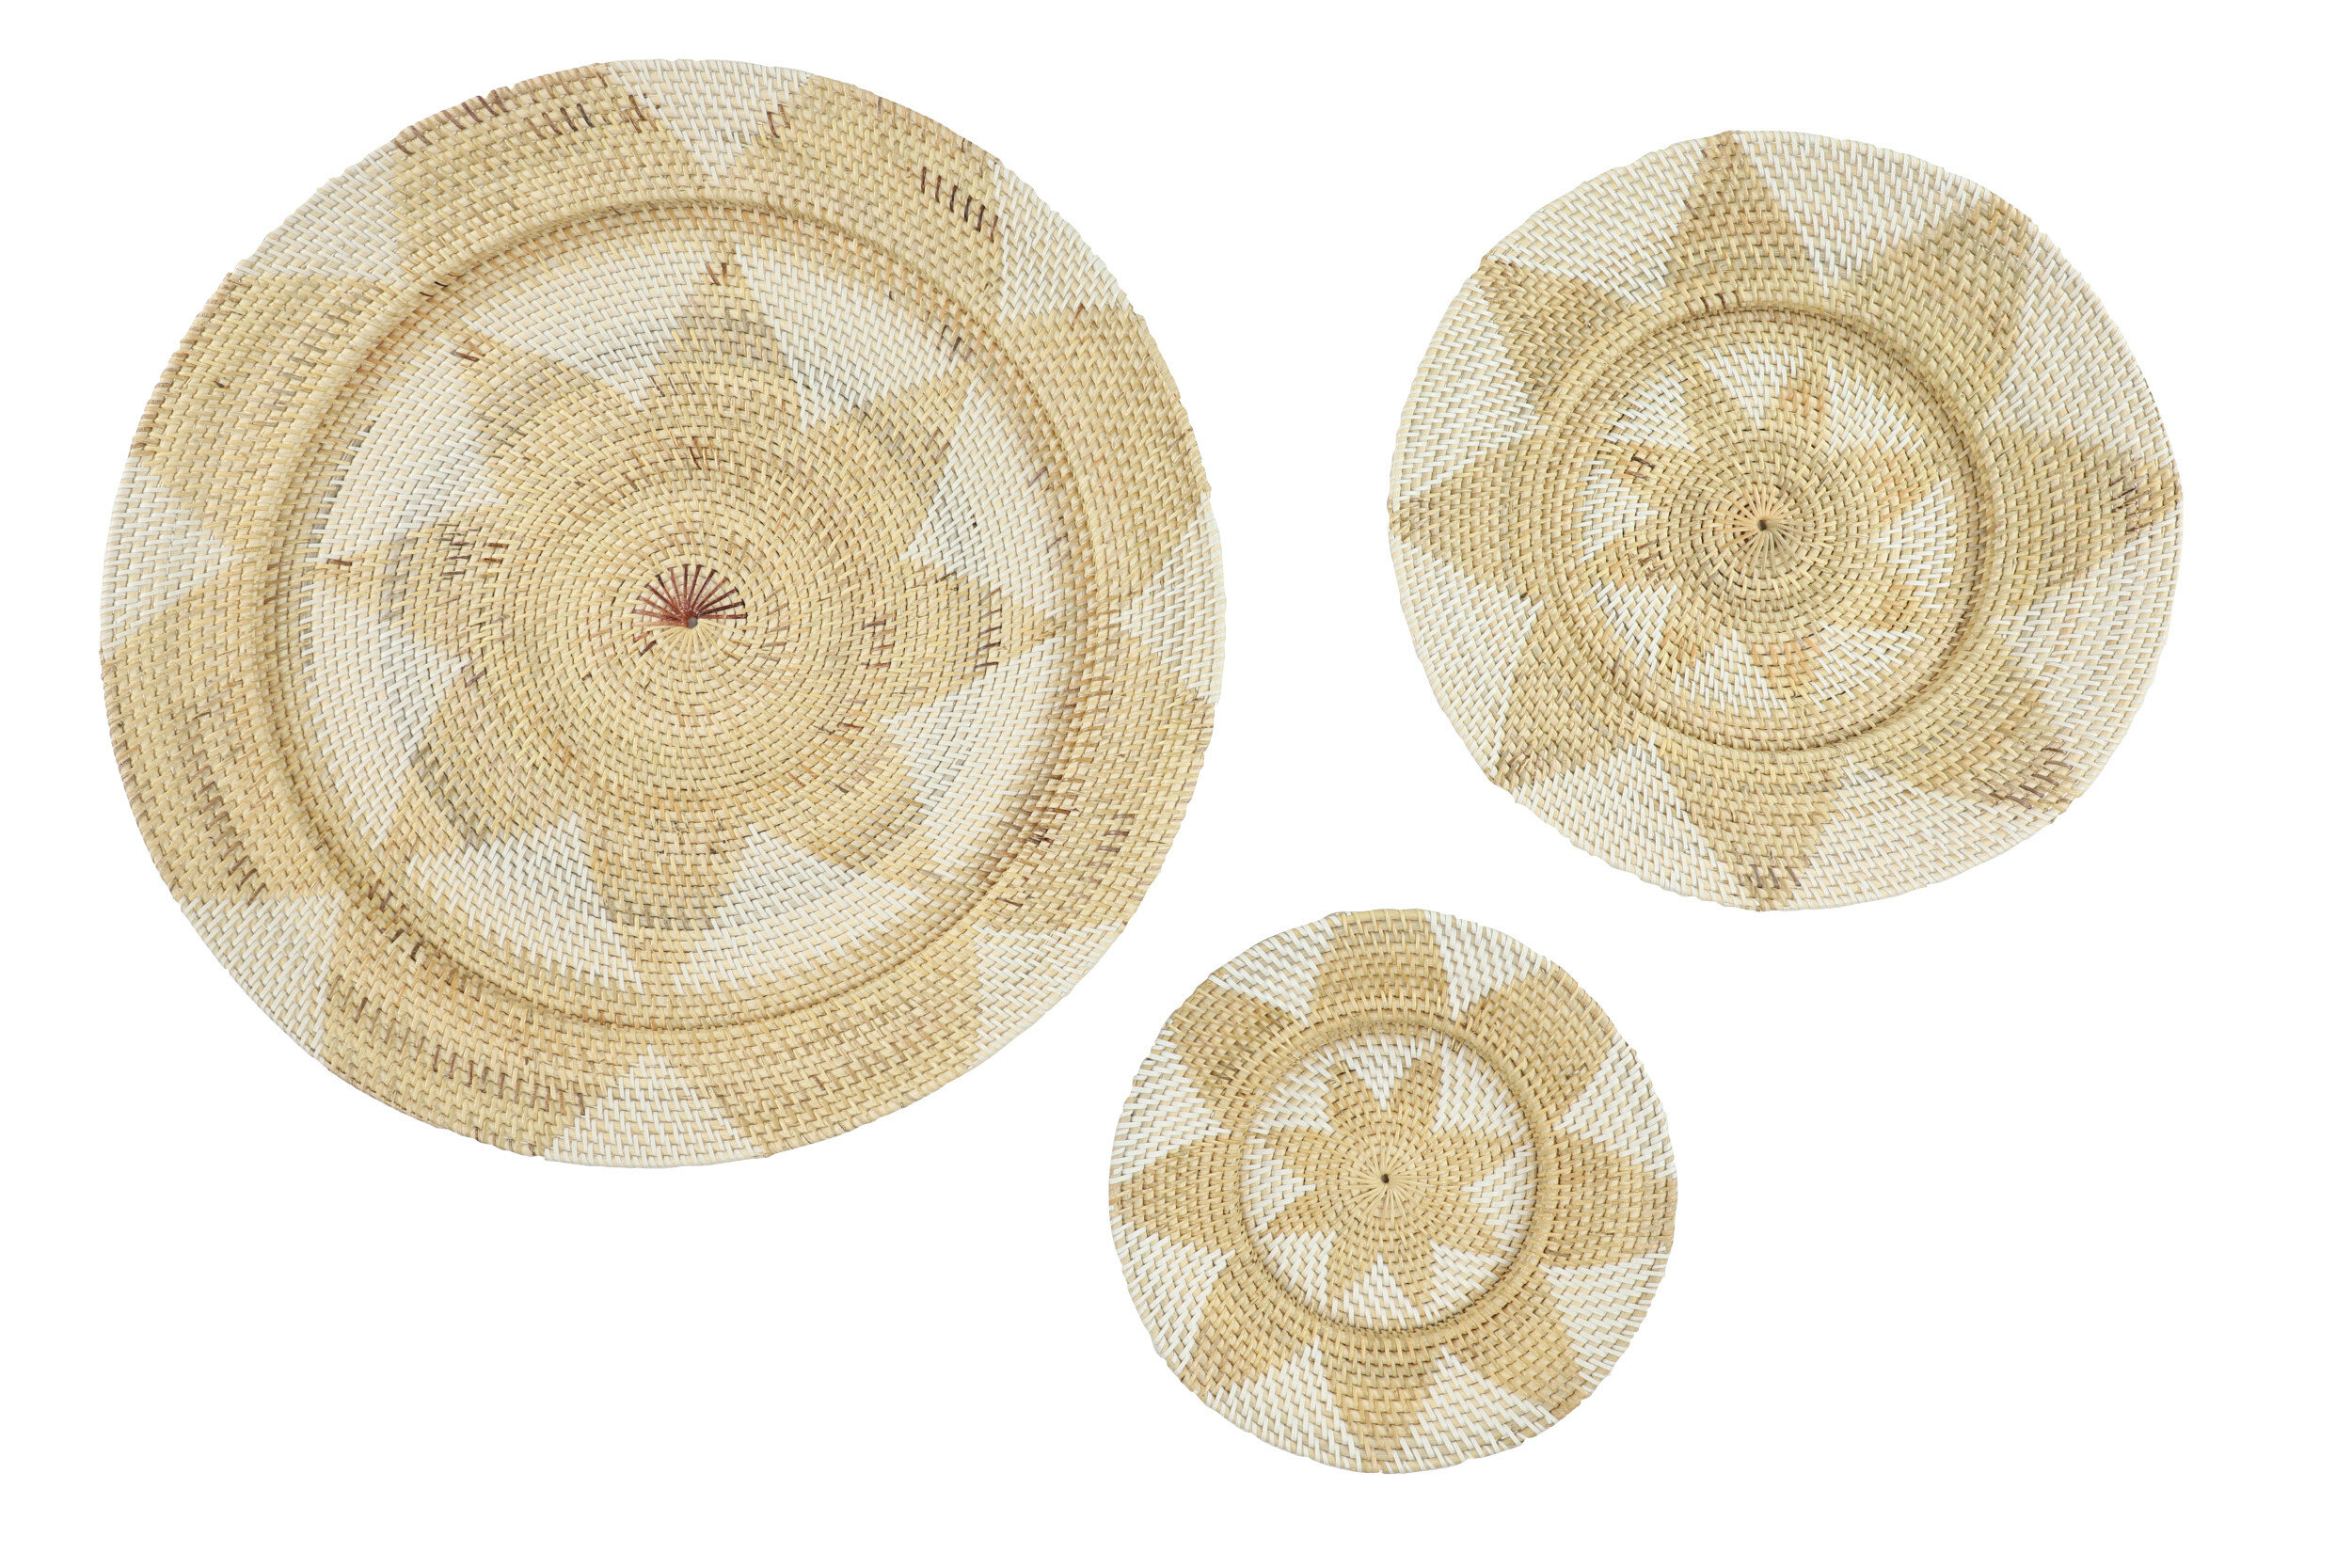 Wall Decor | Joss & Main pertaining to Belle Circular Scroll Wall Decor (Image 27 of 30)